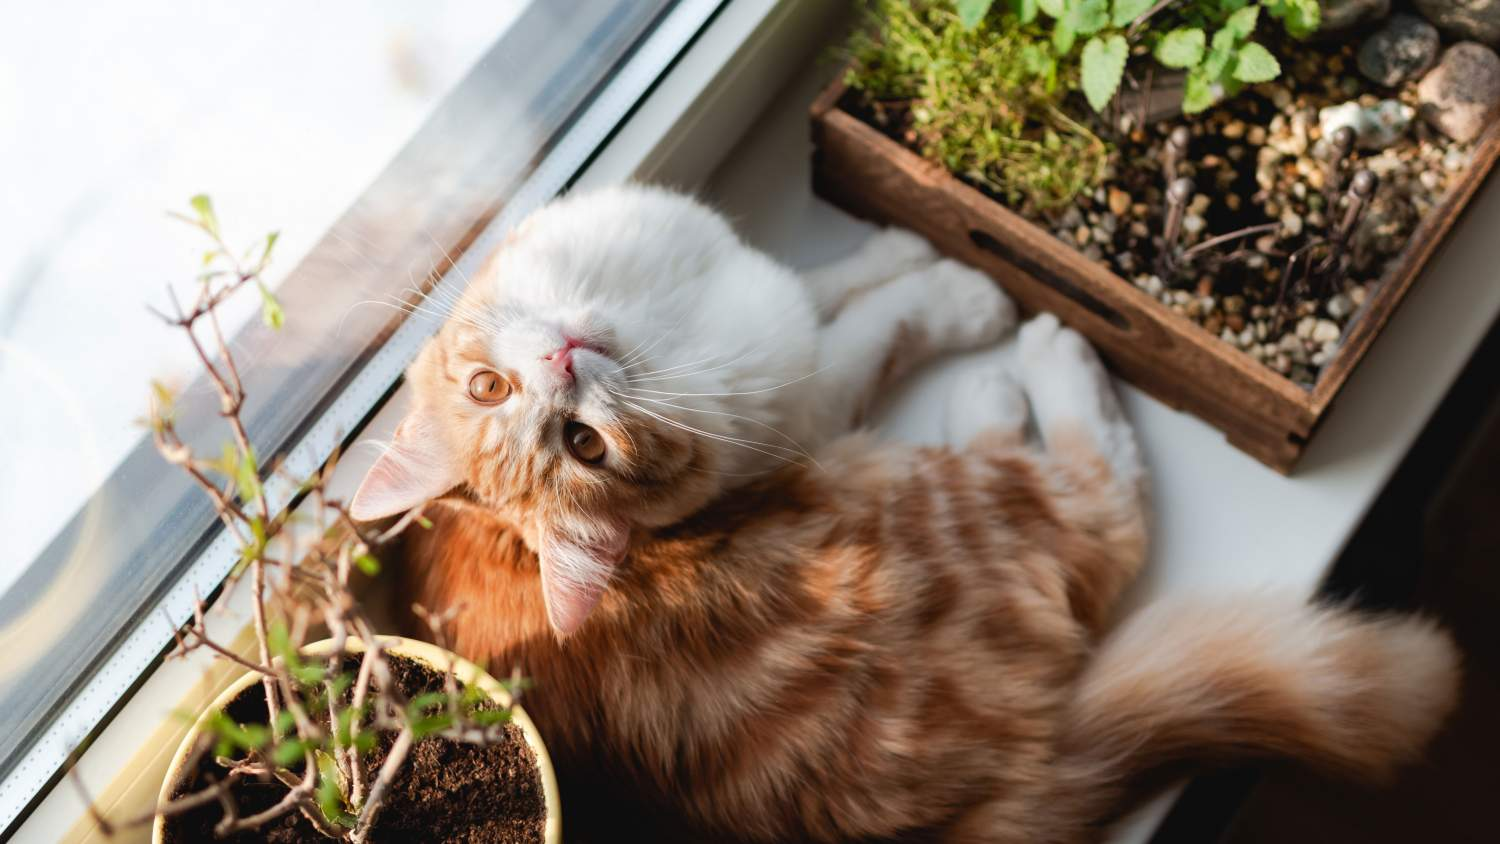 Cat on a windowsill with house plants